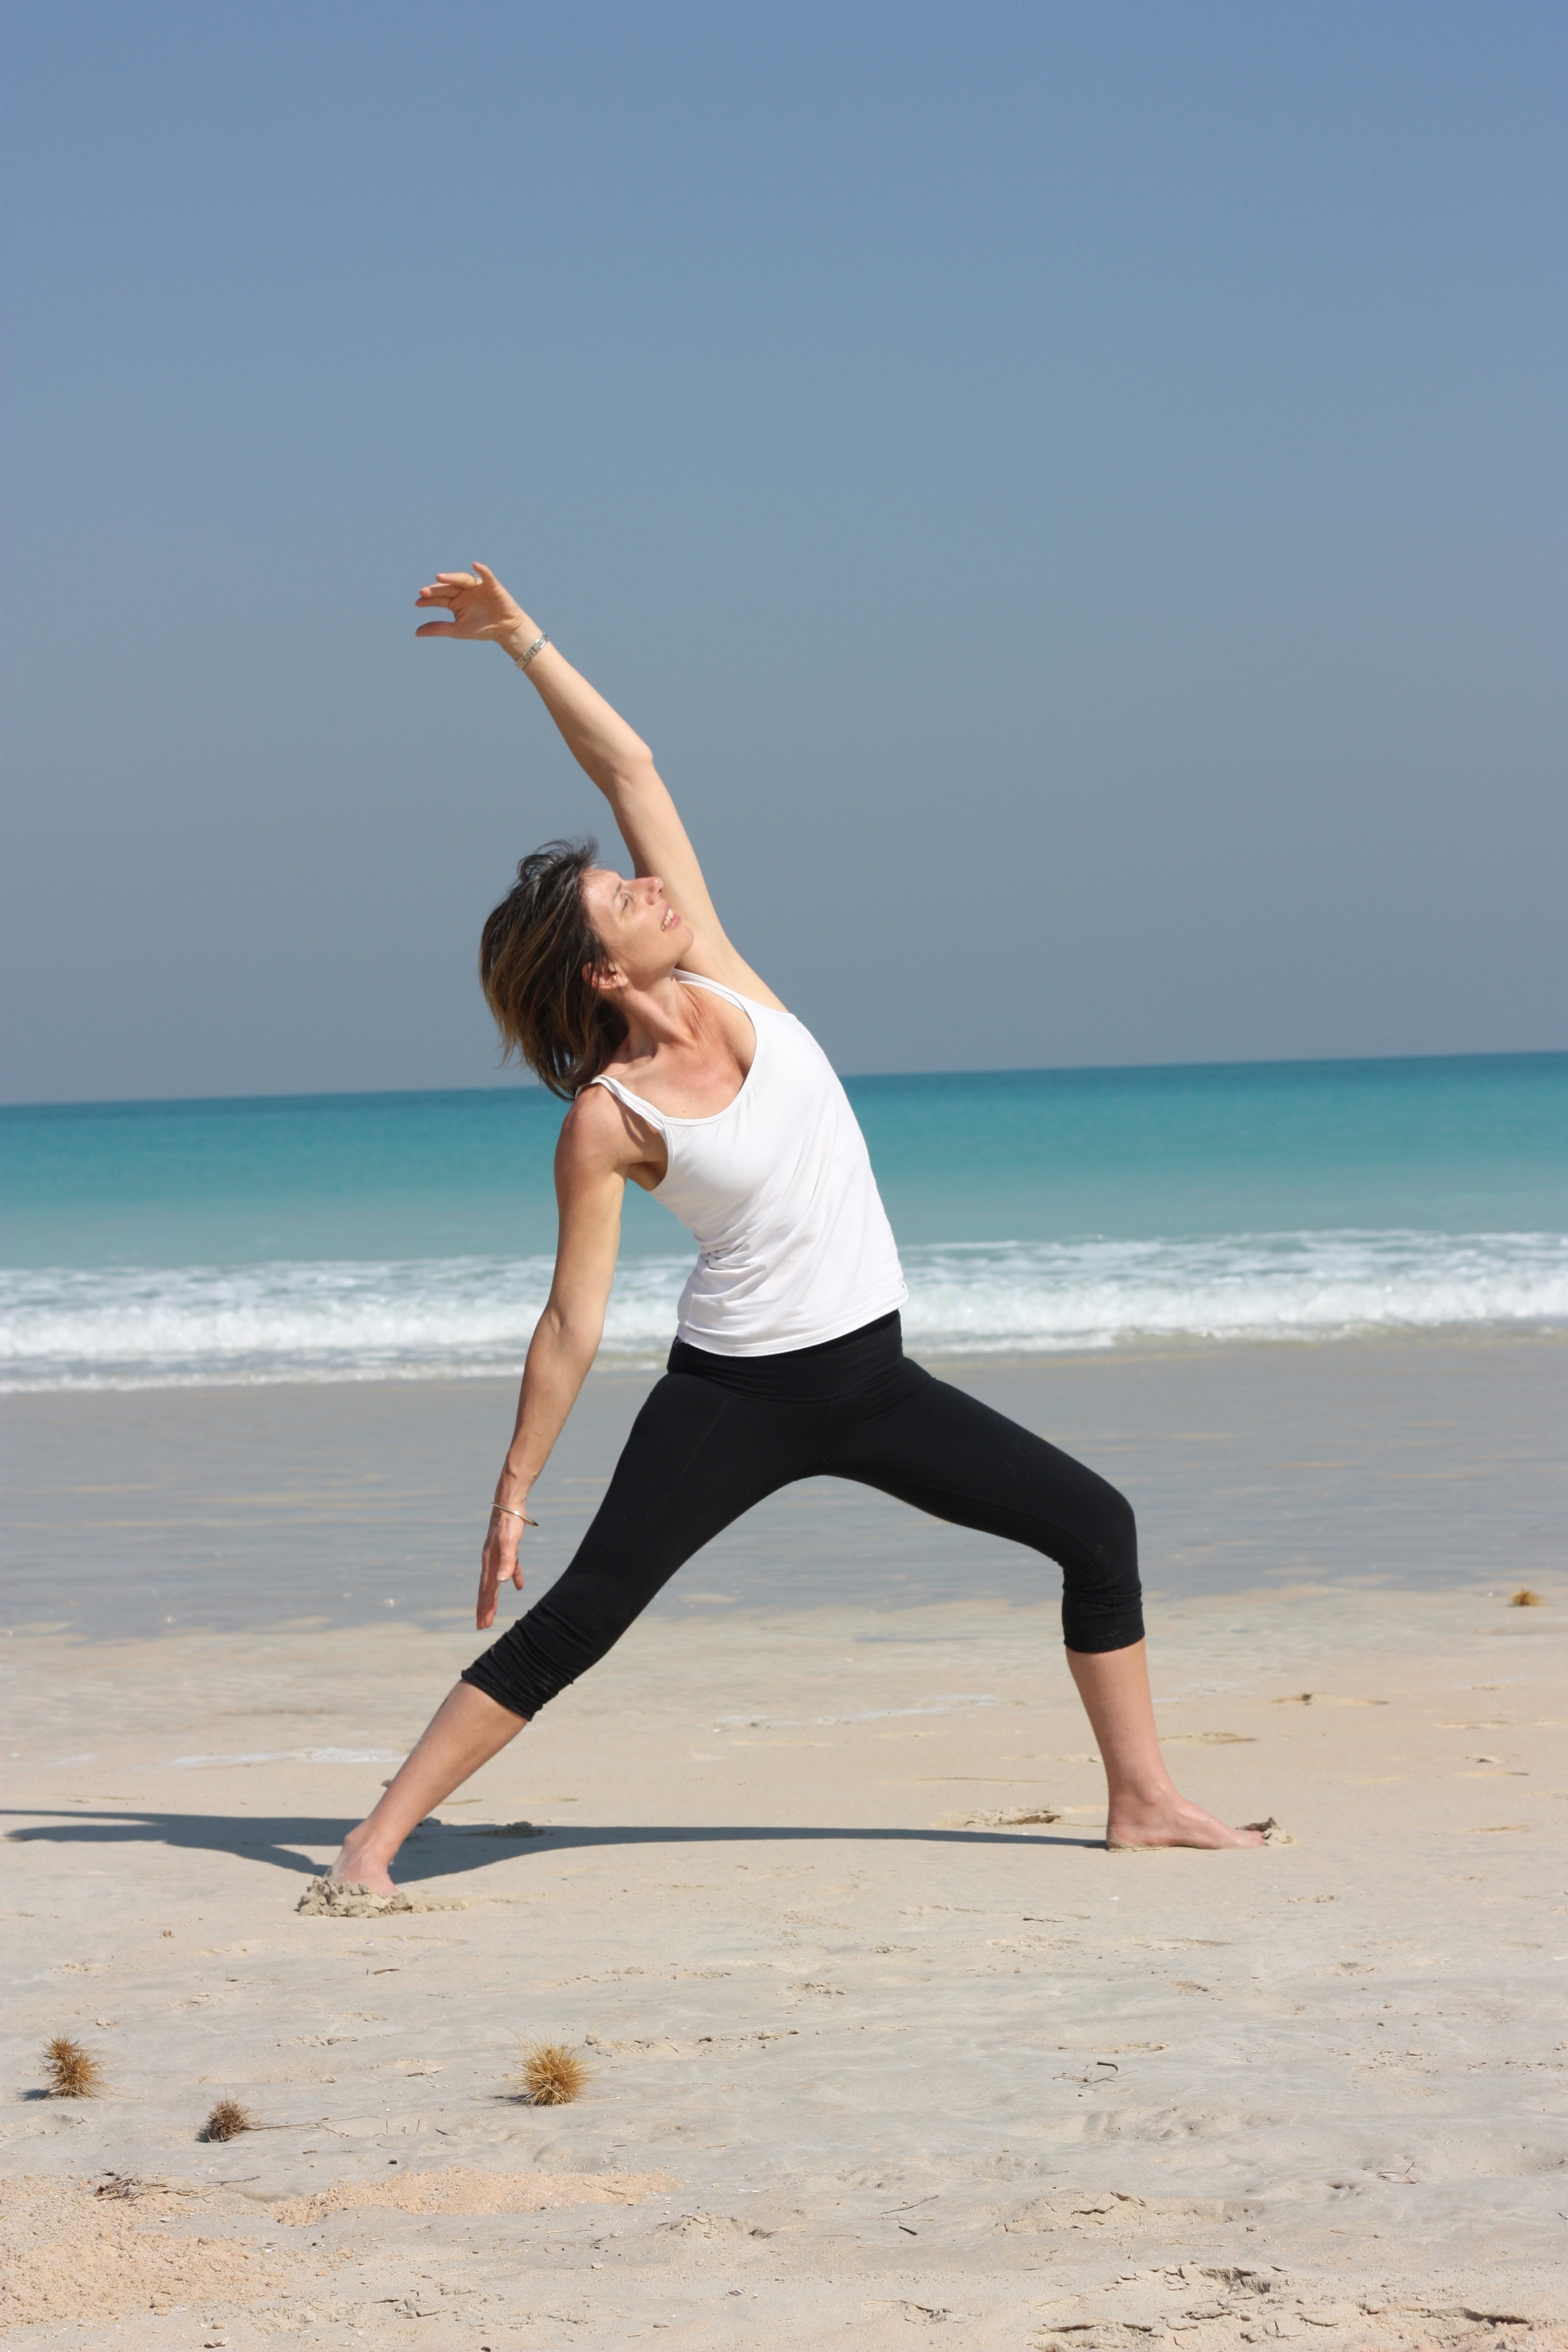 Practicing Yoga safely While Pregnant